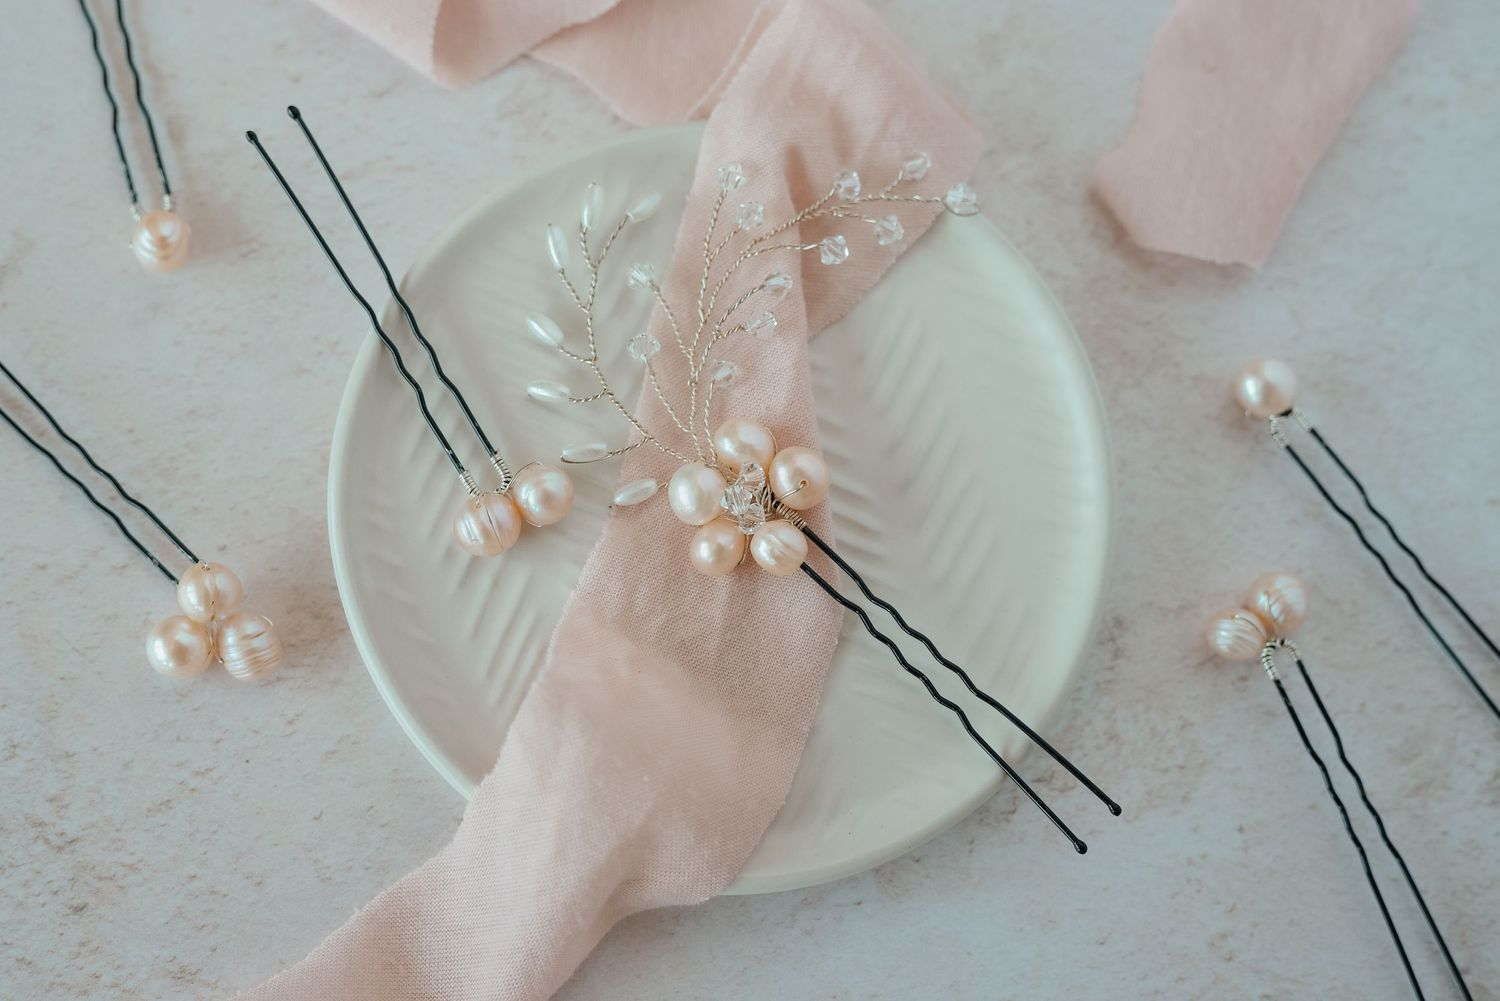 Pink hair pins on cream plate with pink ribbon